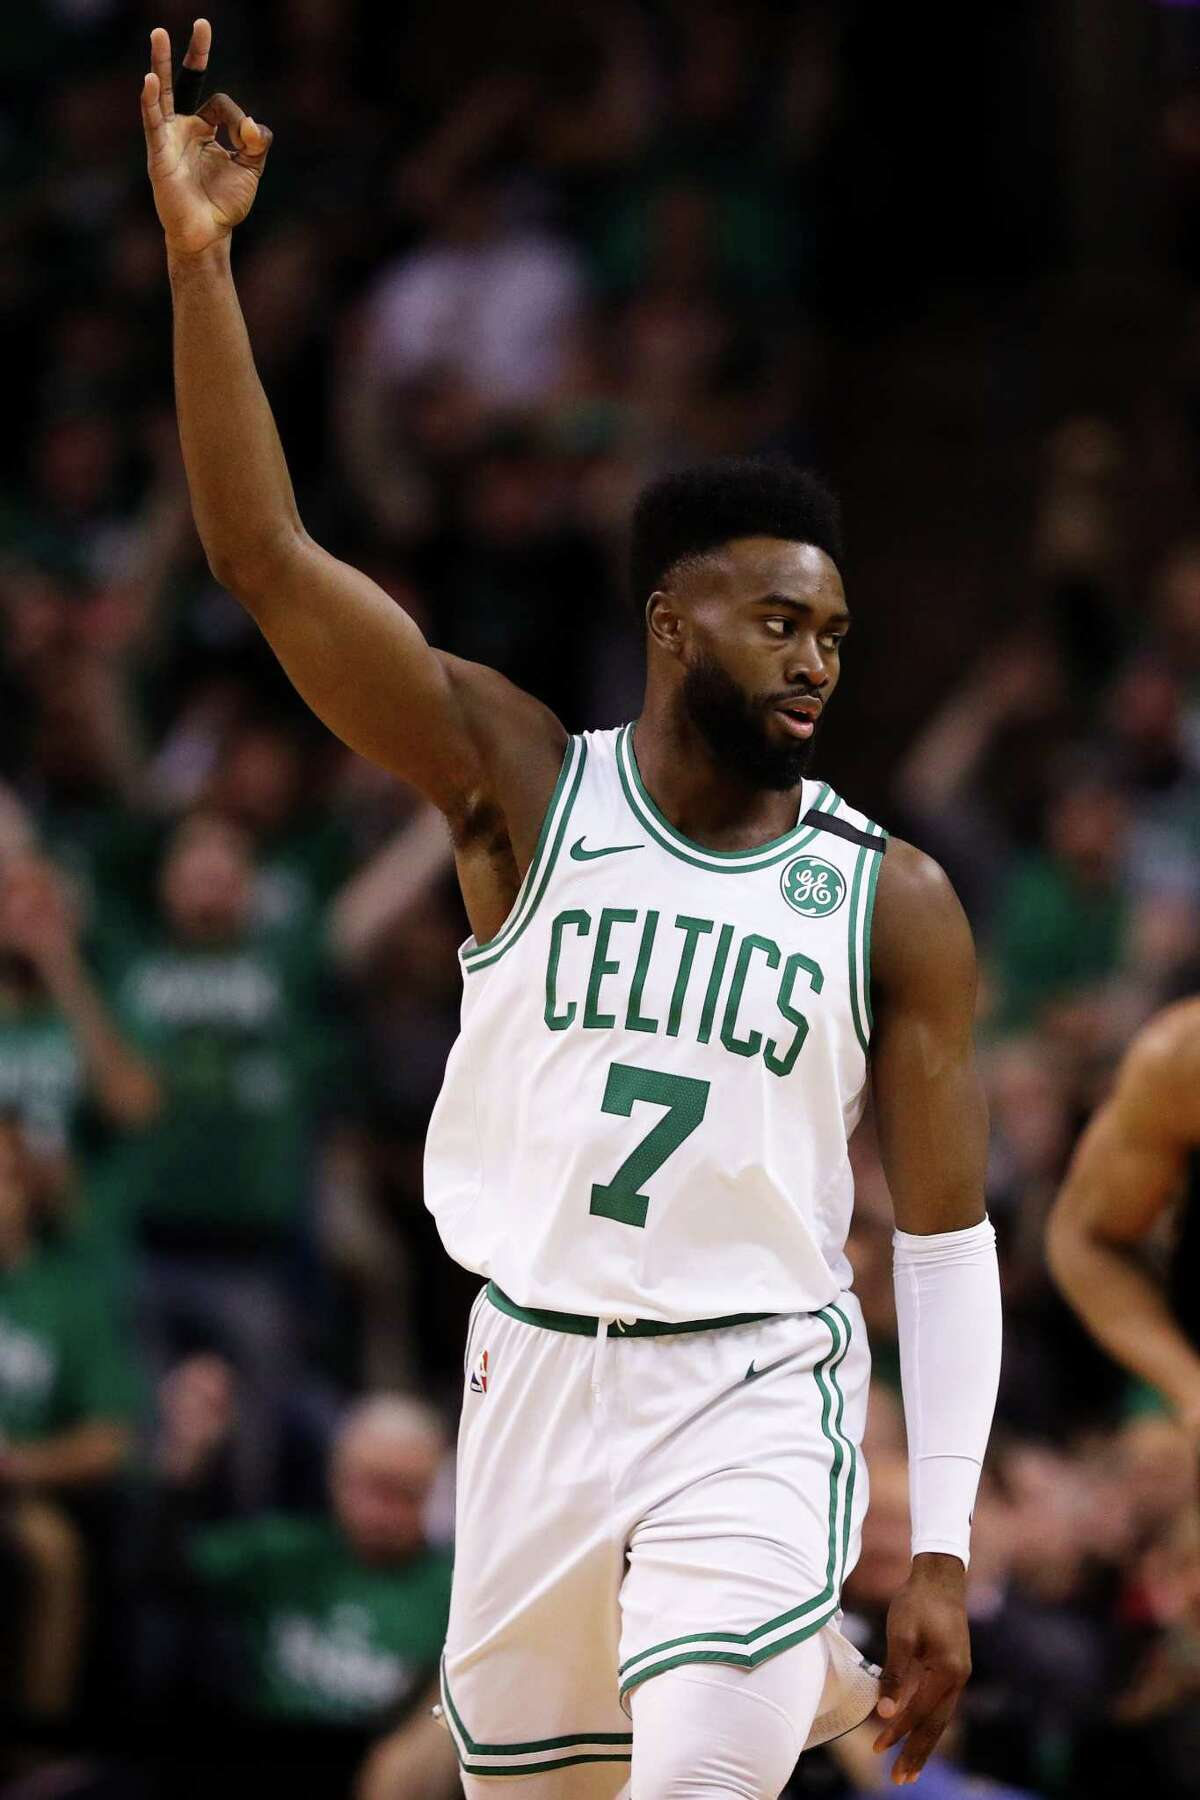 BOSTON, MA - APRIL 17: Jaylen Brown #7 of the Boston Celtics celebrates after hitting a three point shot in the first quarter of Game Two in Round One of the 2018 NBA Playoffs against the Milwaukee Bucks at TD Garden on April 17, 2018 in Boston, Massachusetts. (Photo by Maddie Meyer/Getty Images)